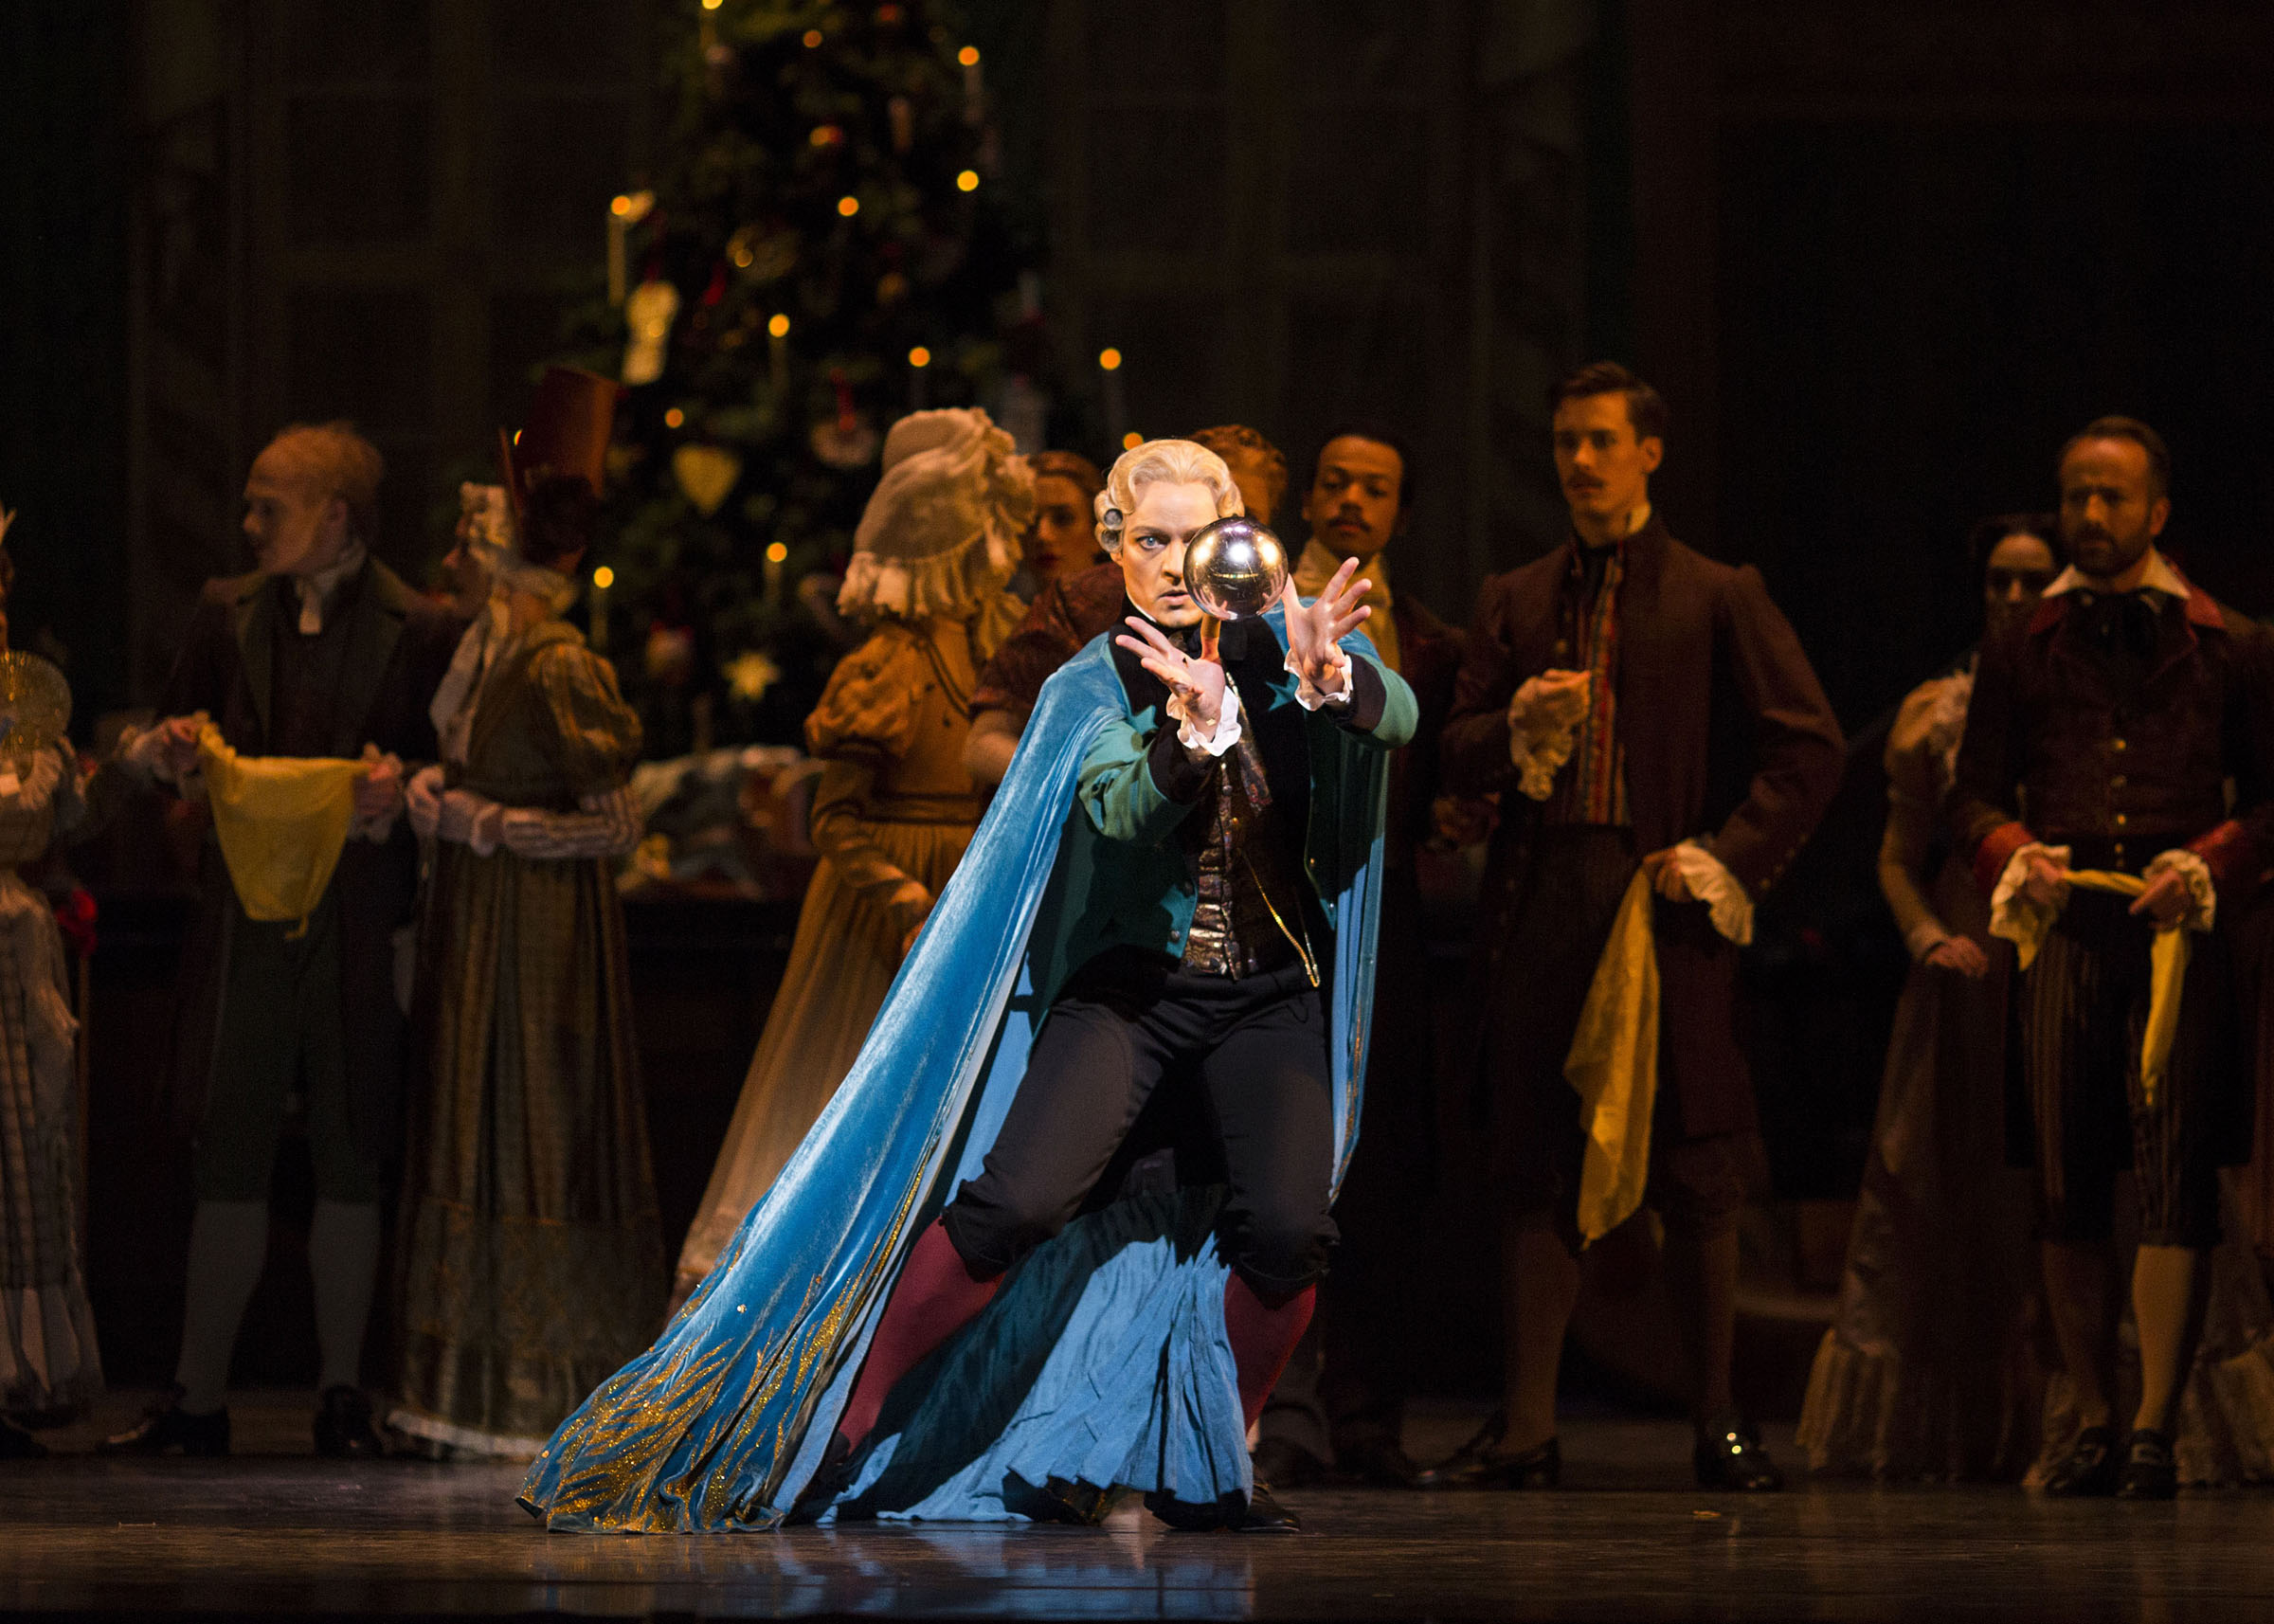 The Nutcracker by the Royal Ballet